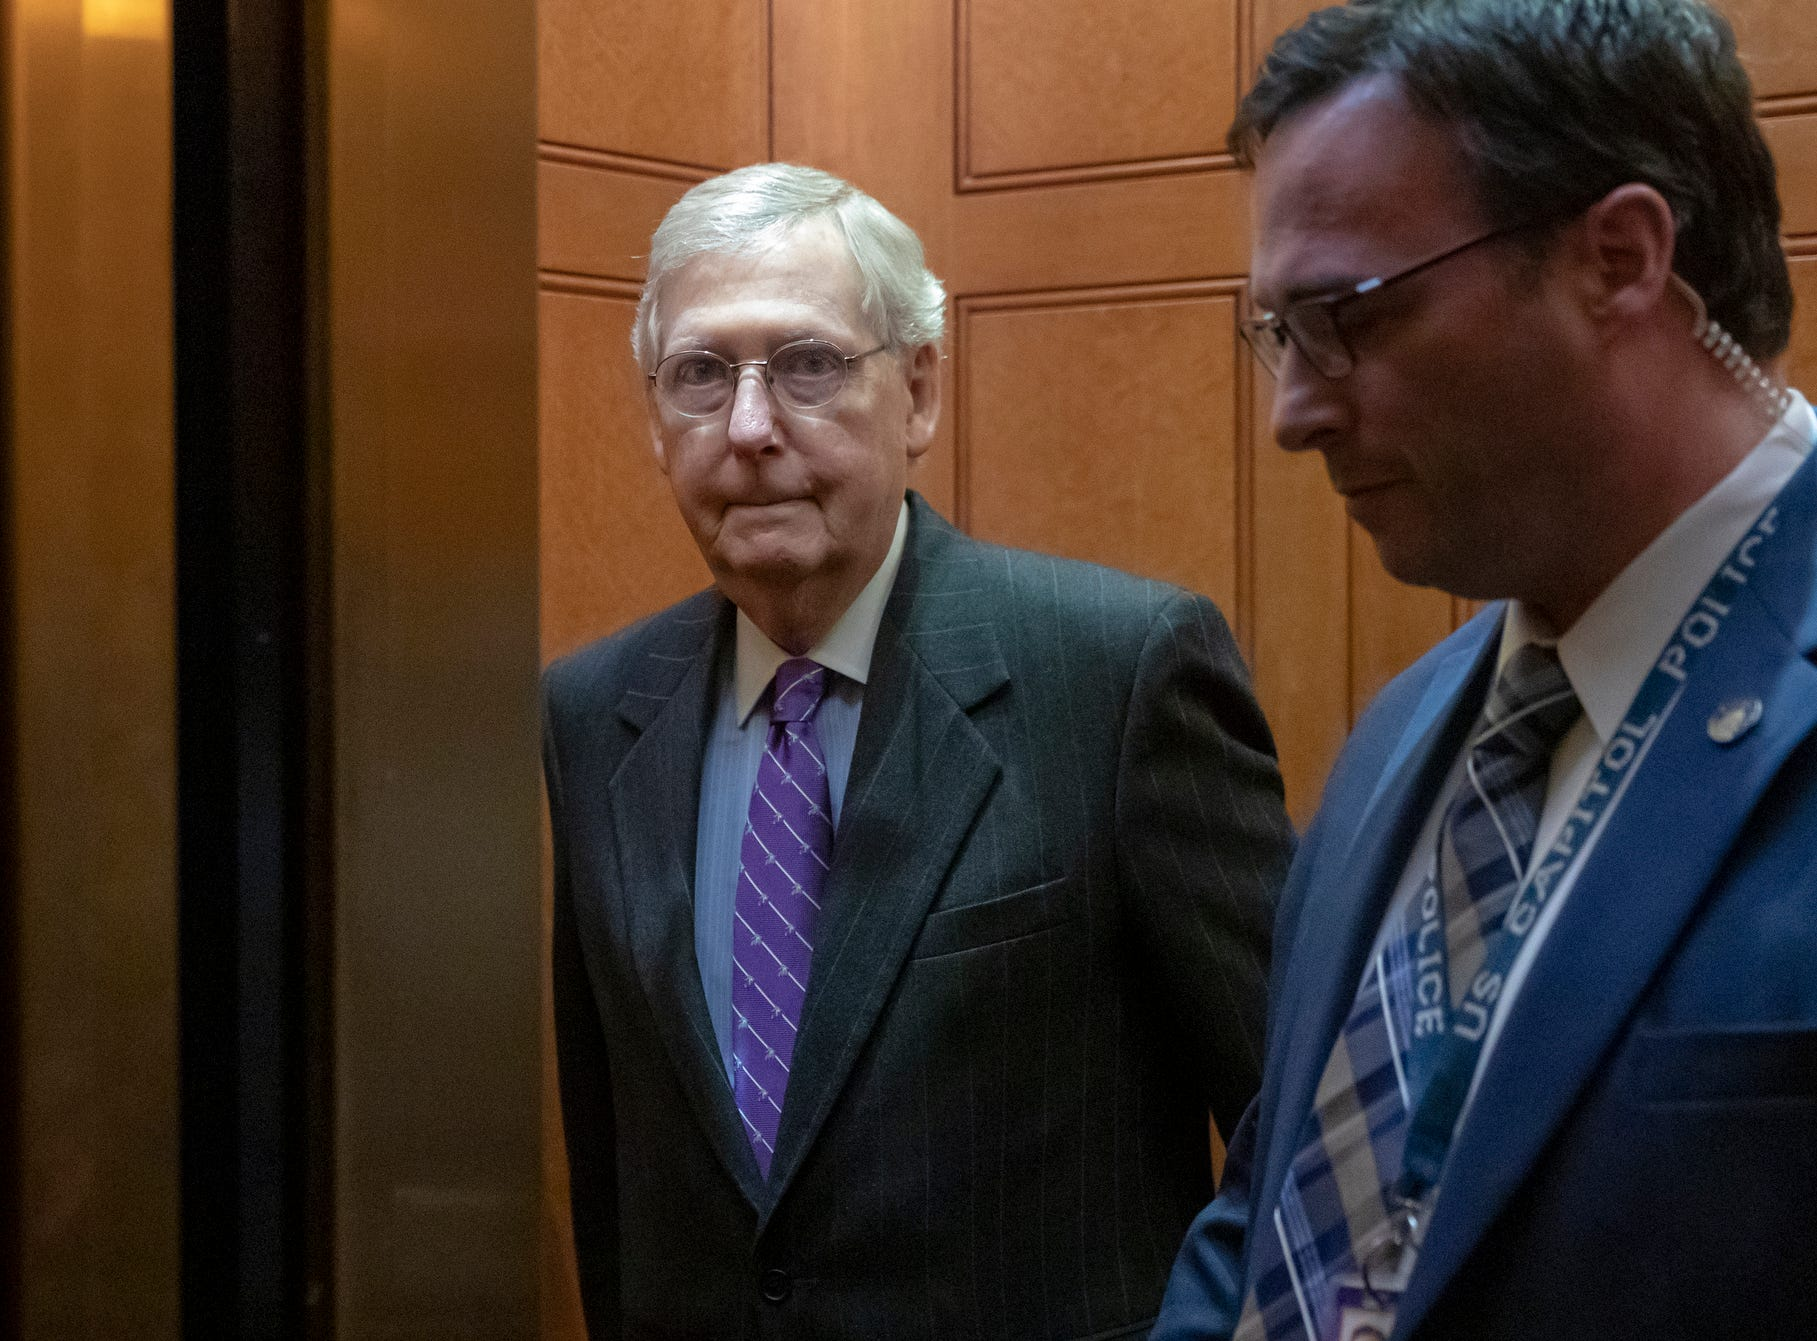 """Senate Majority Leader Mitch McConnell, R-Ky., takes an elevator after leaving the chamber, at the Capitol in Washington Jan. 23, 2019. McConnell said he plans to bring the Democrats' Green New Deal to the floor for a vote so he can put senators """"on record"""" about a plan he calls a """"socialist fantasy to wreck our economy."""""""